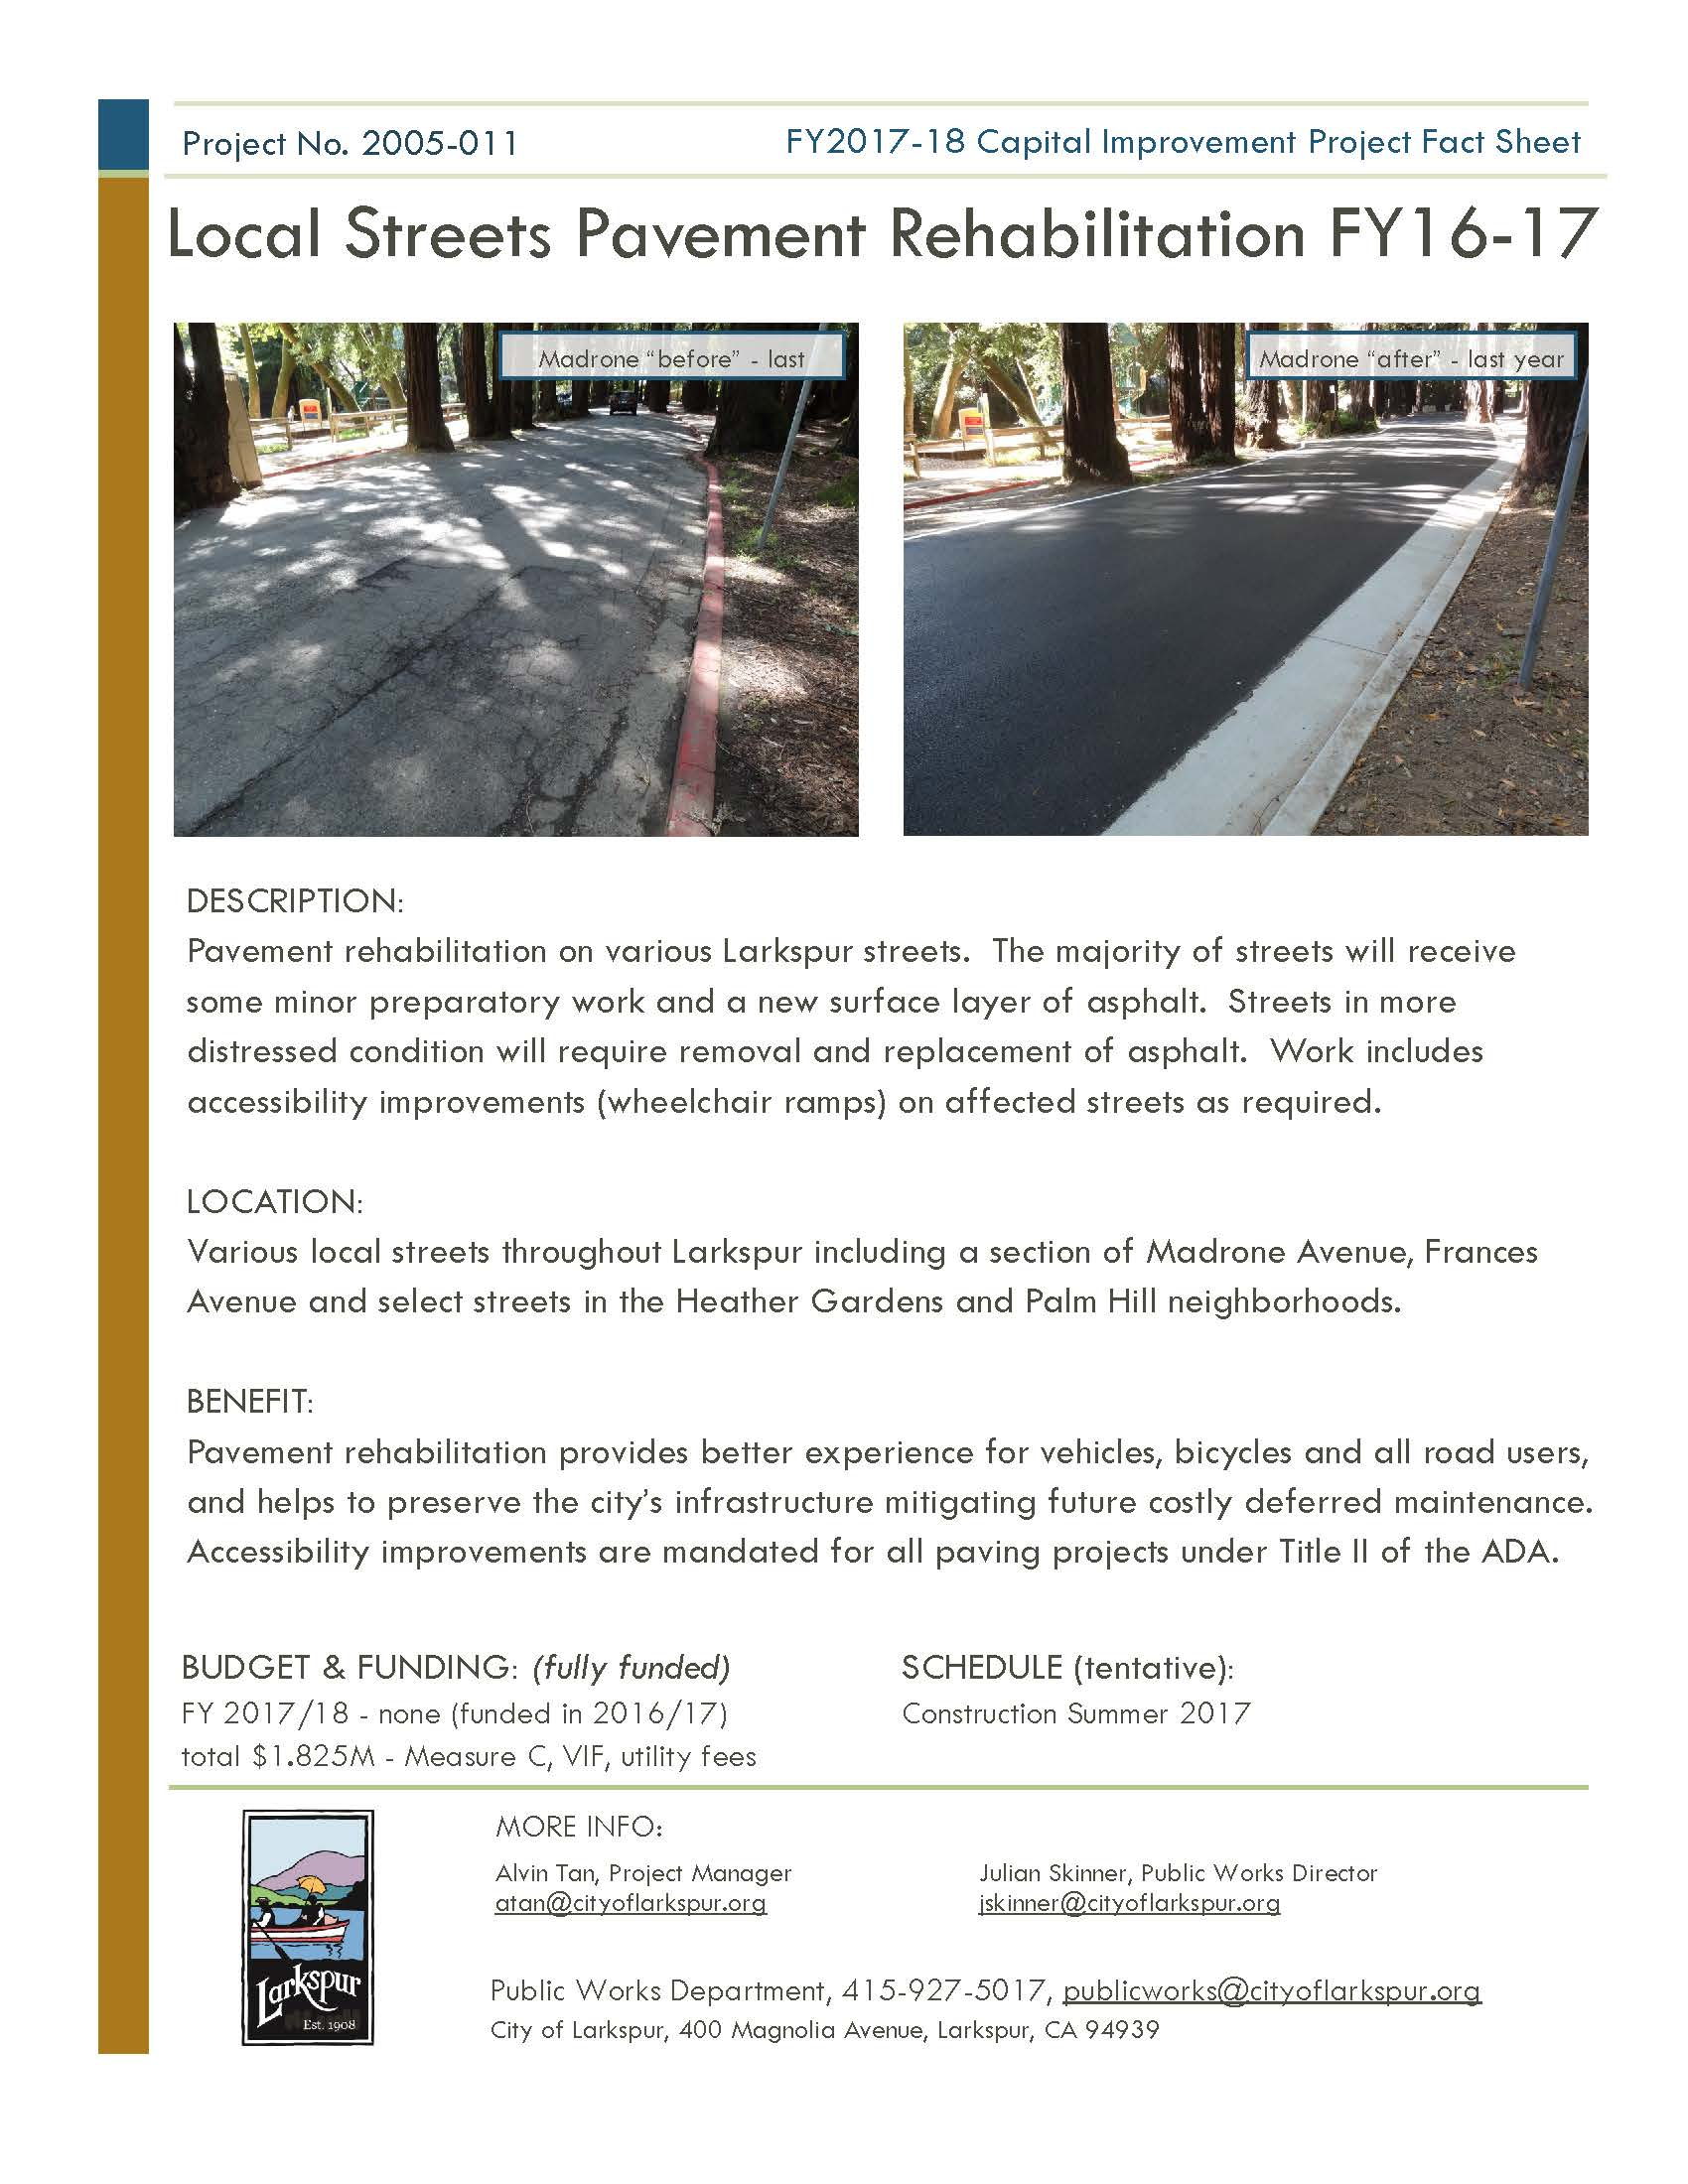 2005-011 Local Street Pavement FY16-17